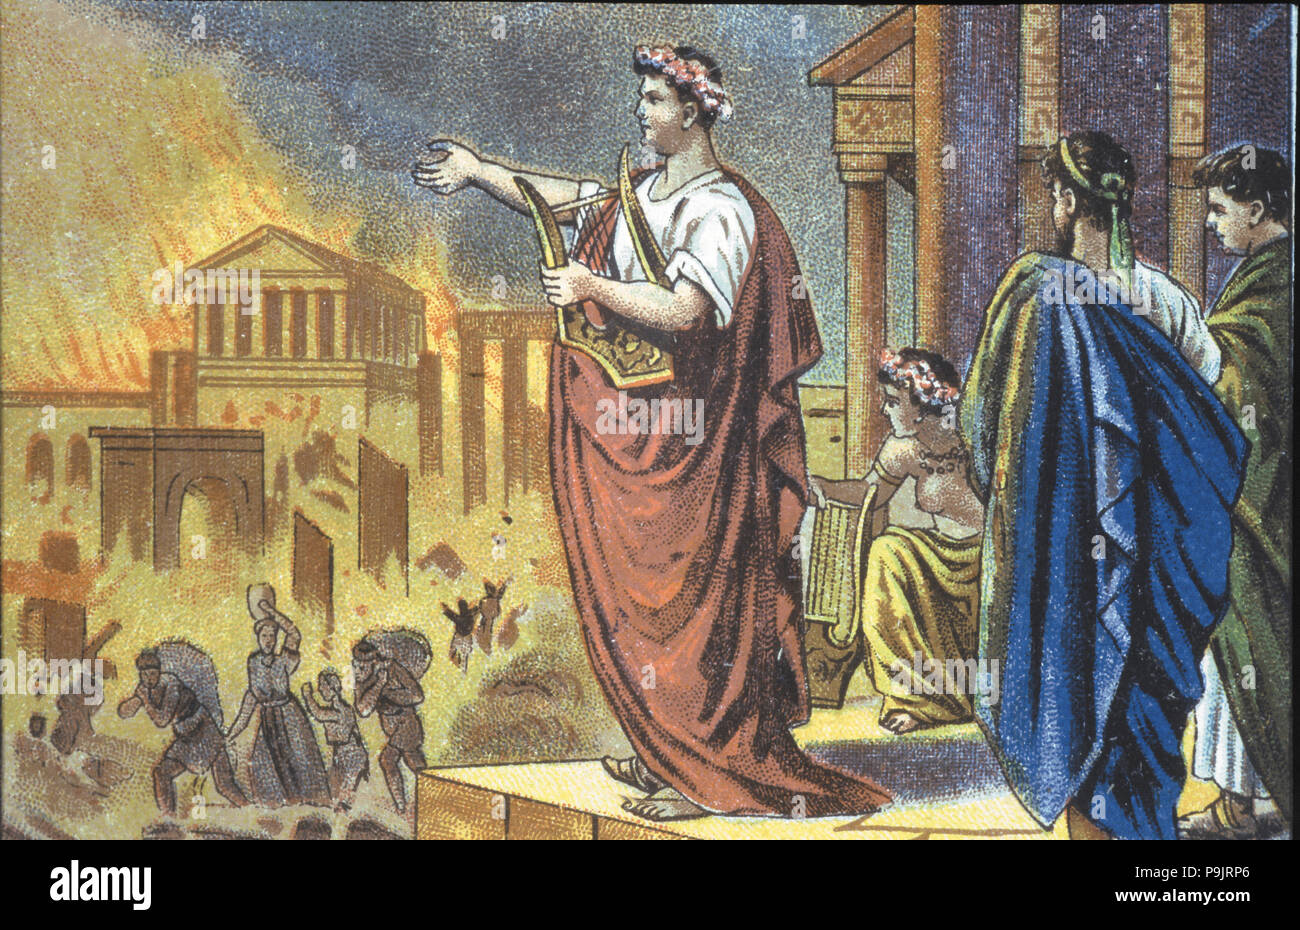 Fire of Rome ordered by the Emperor Nero in 64 AD, coloured engraving. - Stock Image